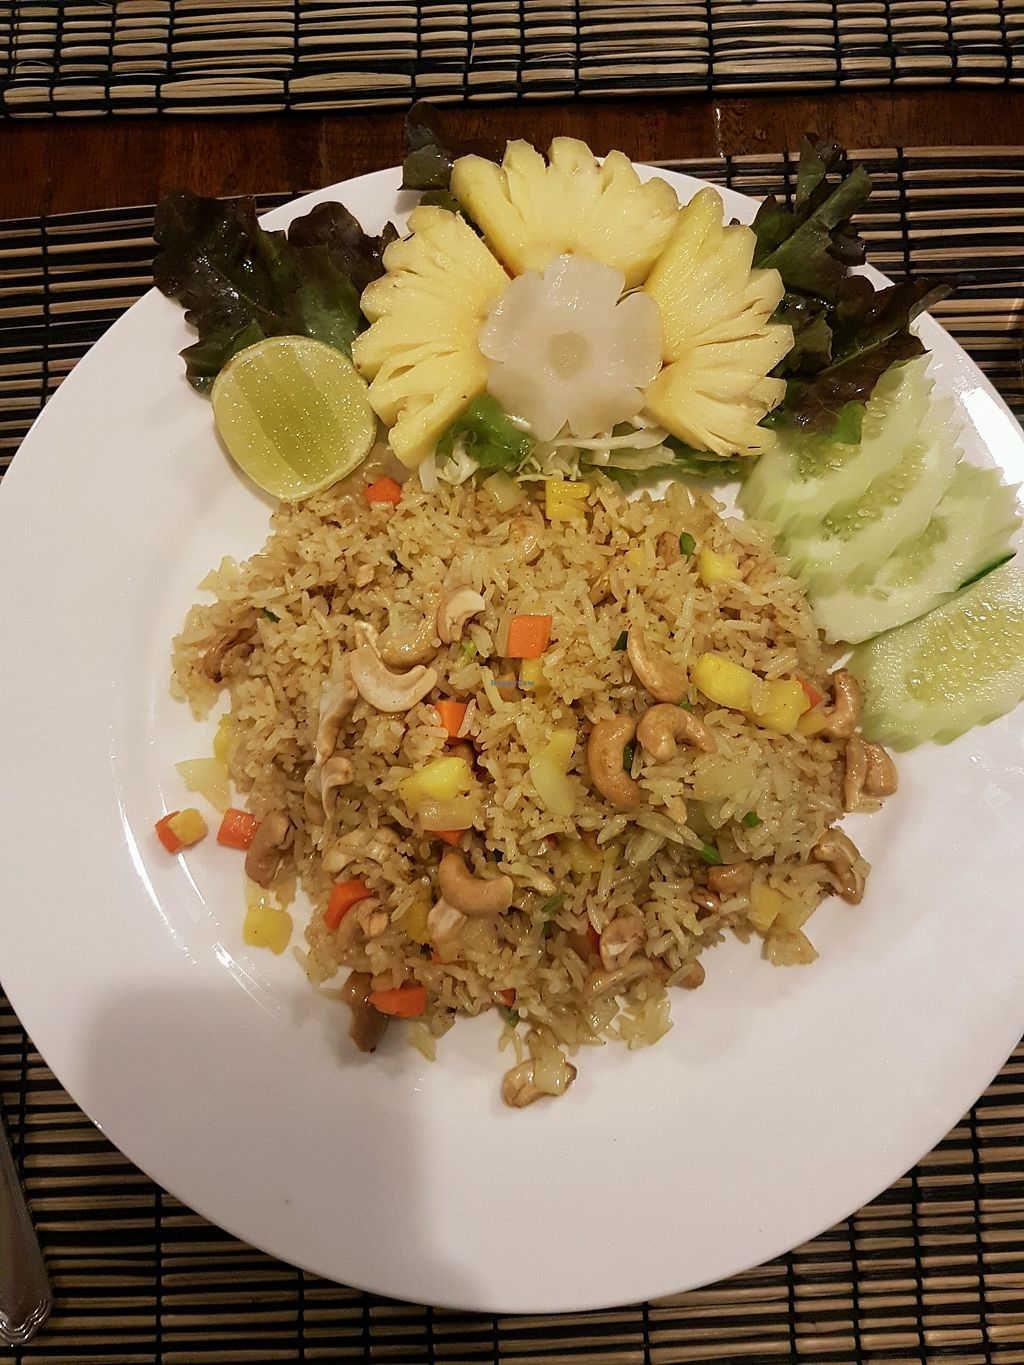 """Photo of Pailay  by <a href=""""/members/profile/ZuzannaChronowska"""">ZuzannaChronowska</a> <br/>Fried rice with cashews and pineapple <br/> November 29, 2017  - <a href='/contact/abuse/image/106139/330303'>Report</a>"""